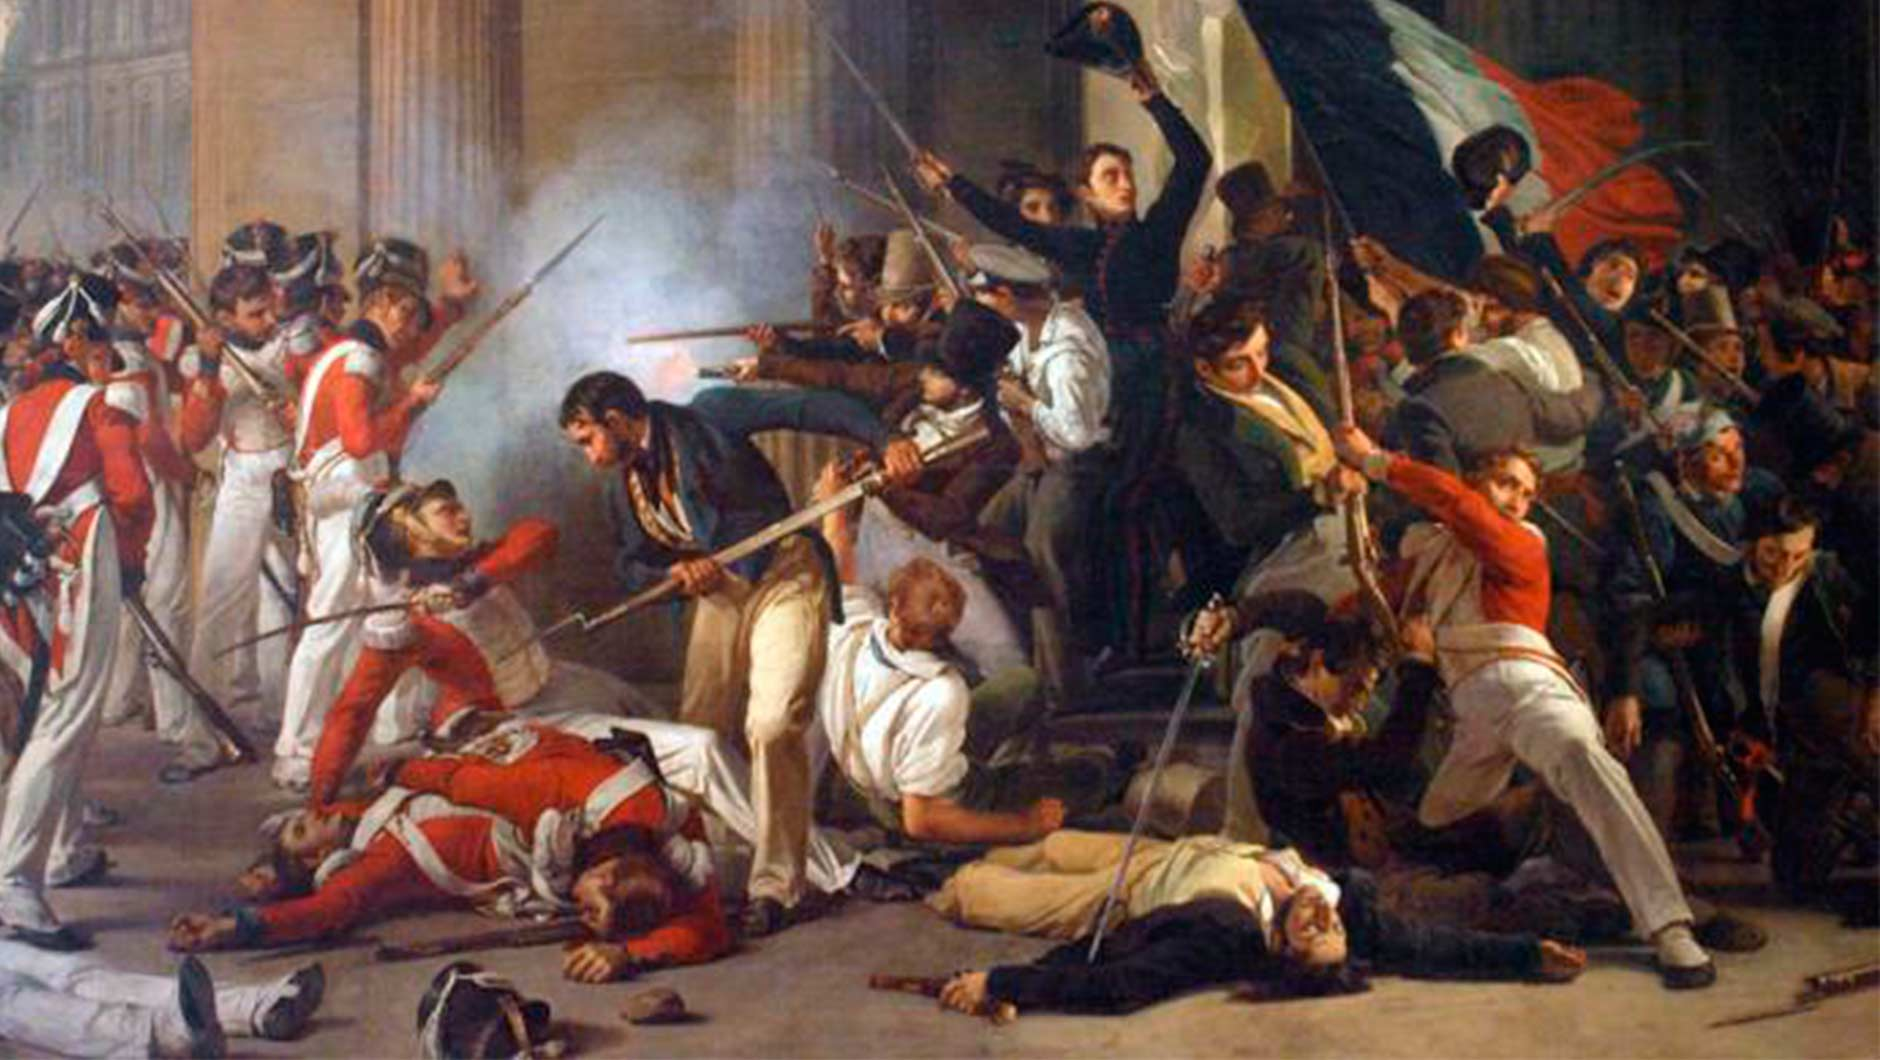 an analysis of the french revolutionary wars The american revolutionary war that's what we often call it if the french revolution is the benchmark for how revolutions go, then the american revolution was not a revolution at all the french queen was just one of the innocent victims of the french revolution.